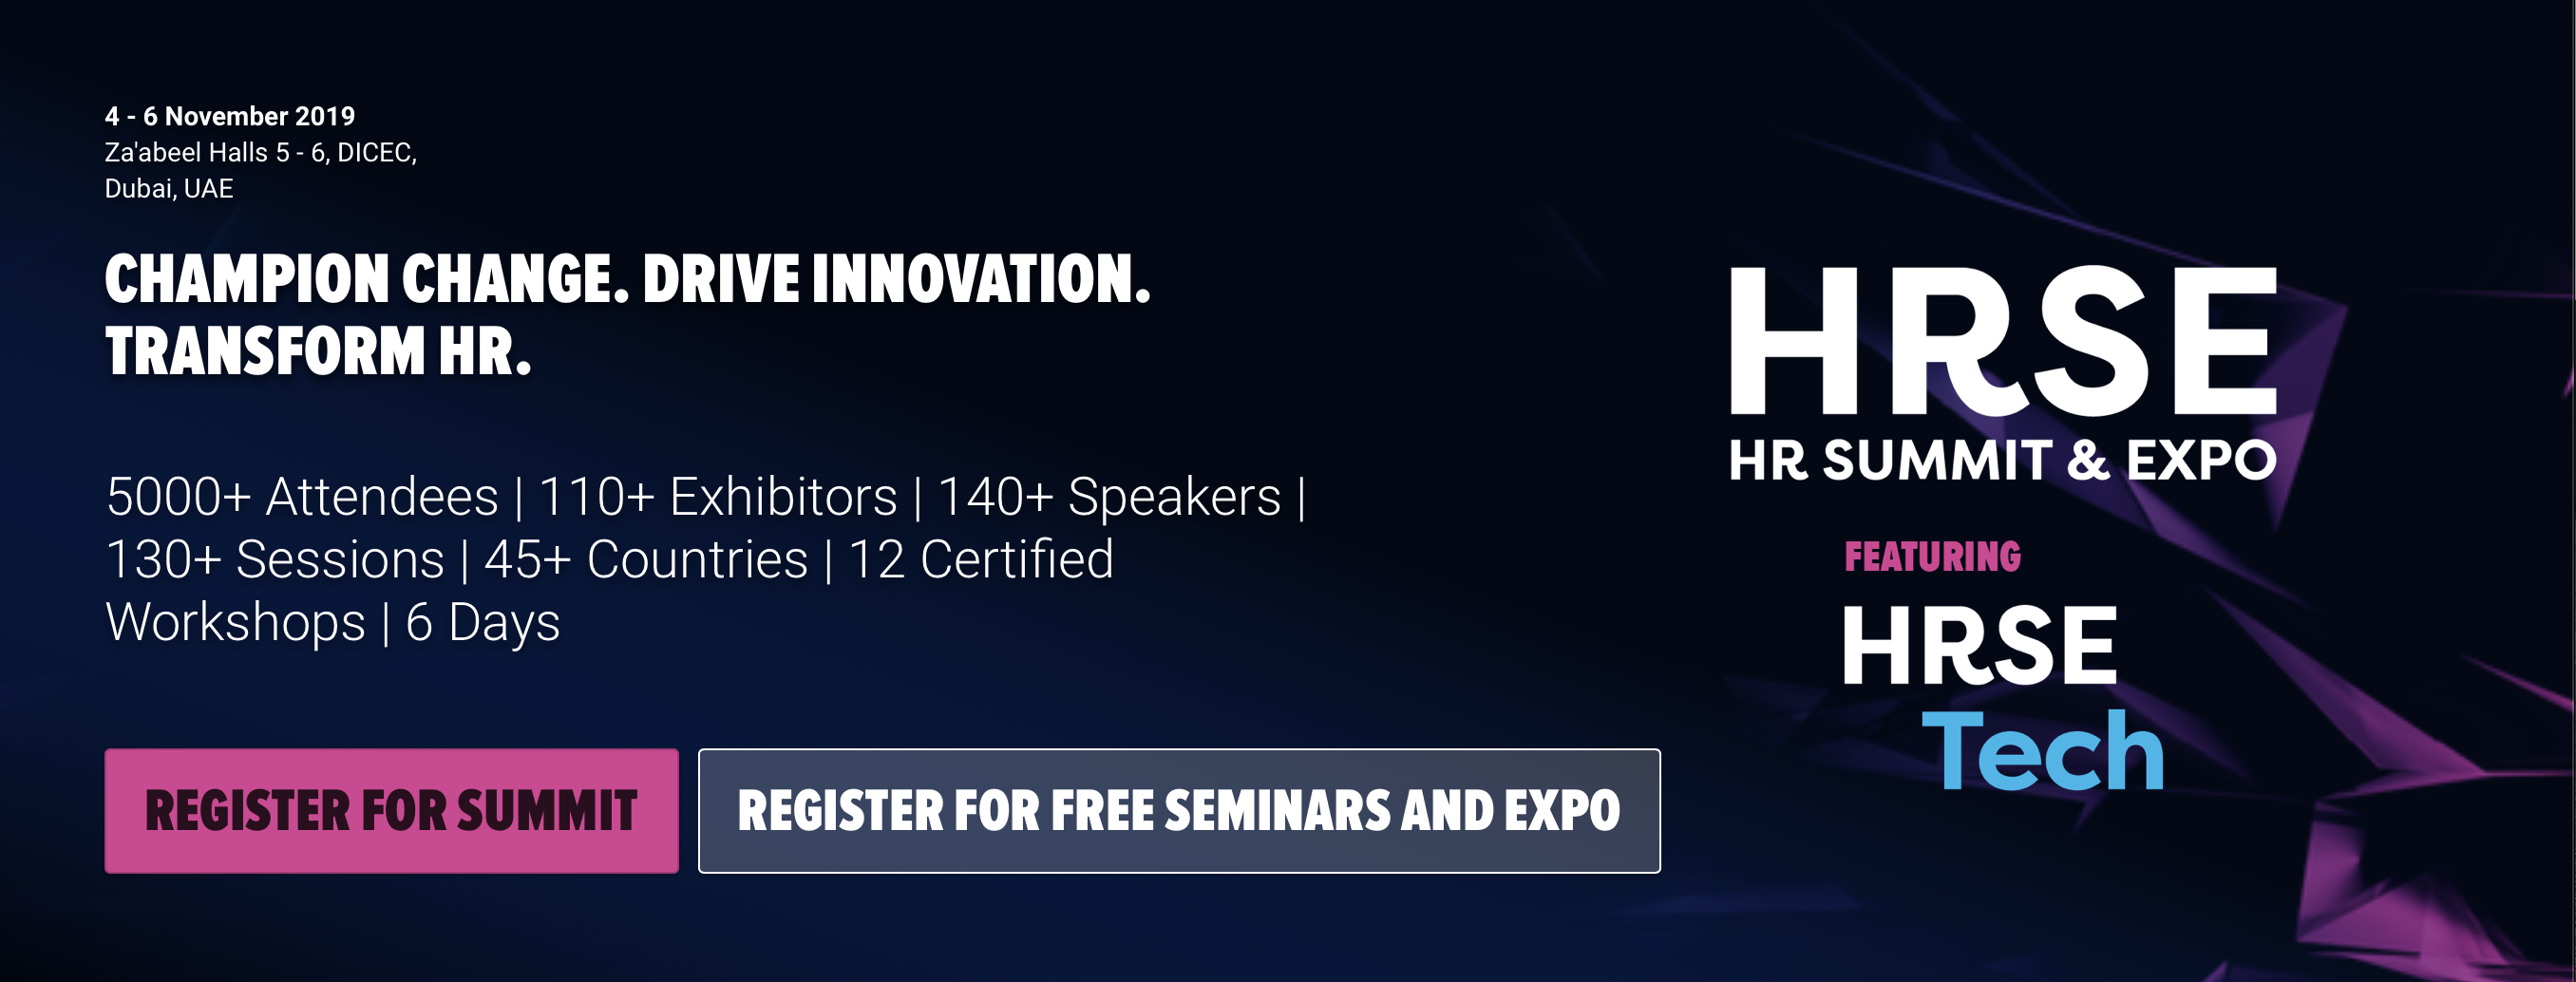 HRSE HR Summit & Expo 2019